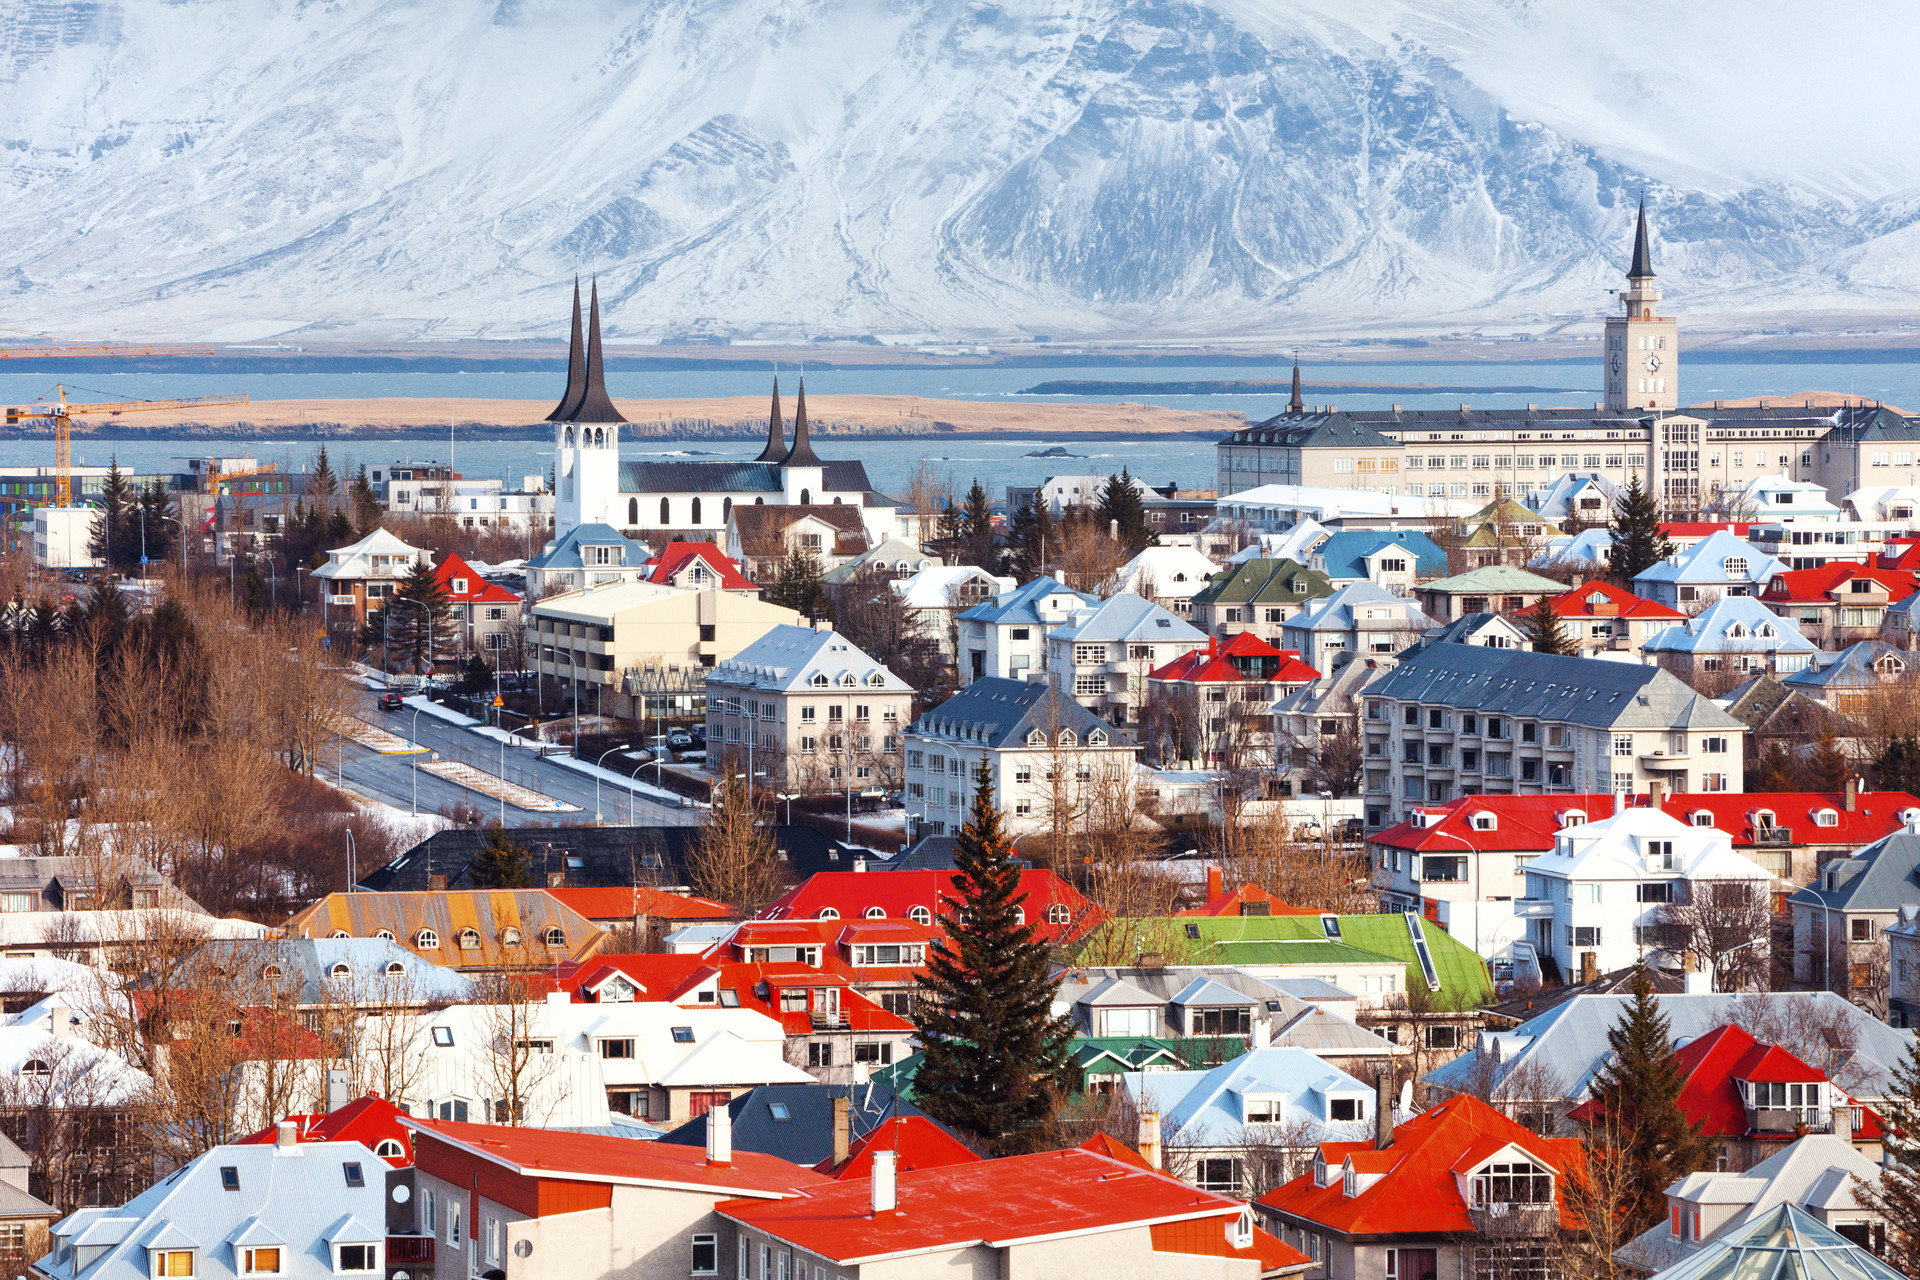 Boutique Hotels Health + Wellness Hotels Iceland Meditation Retreats Offbeat Outdoors + Adventure Reykjavík Road Trips Romance Travel Tips Trip Ideas Yoga Retreats outdoor snow Town City mountain human settlement Winter cityscape Harbor aerial photography panorama